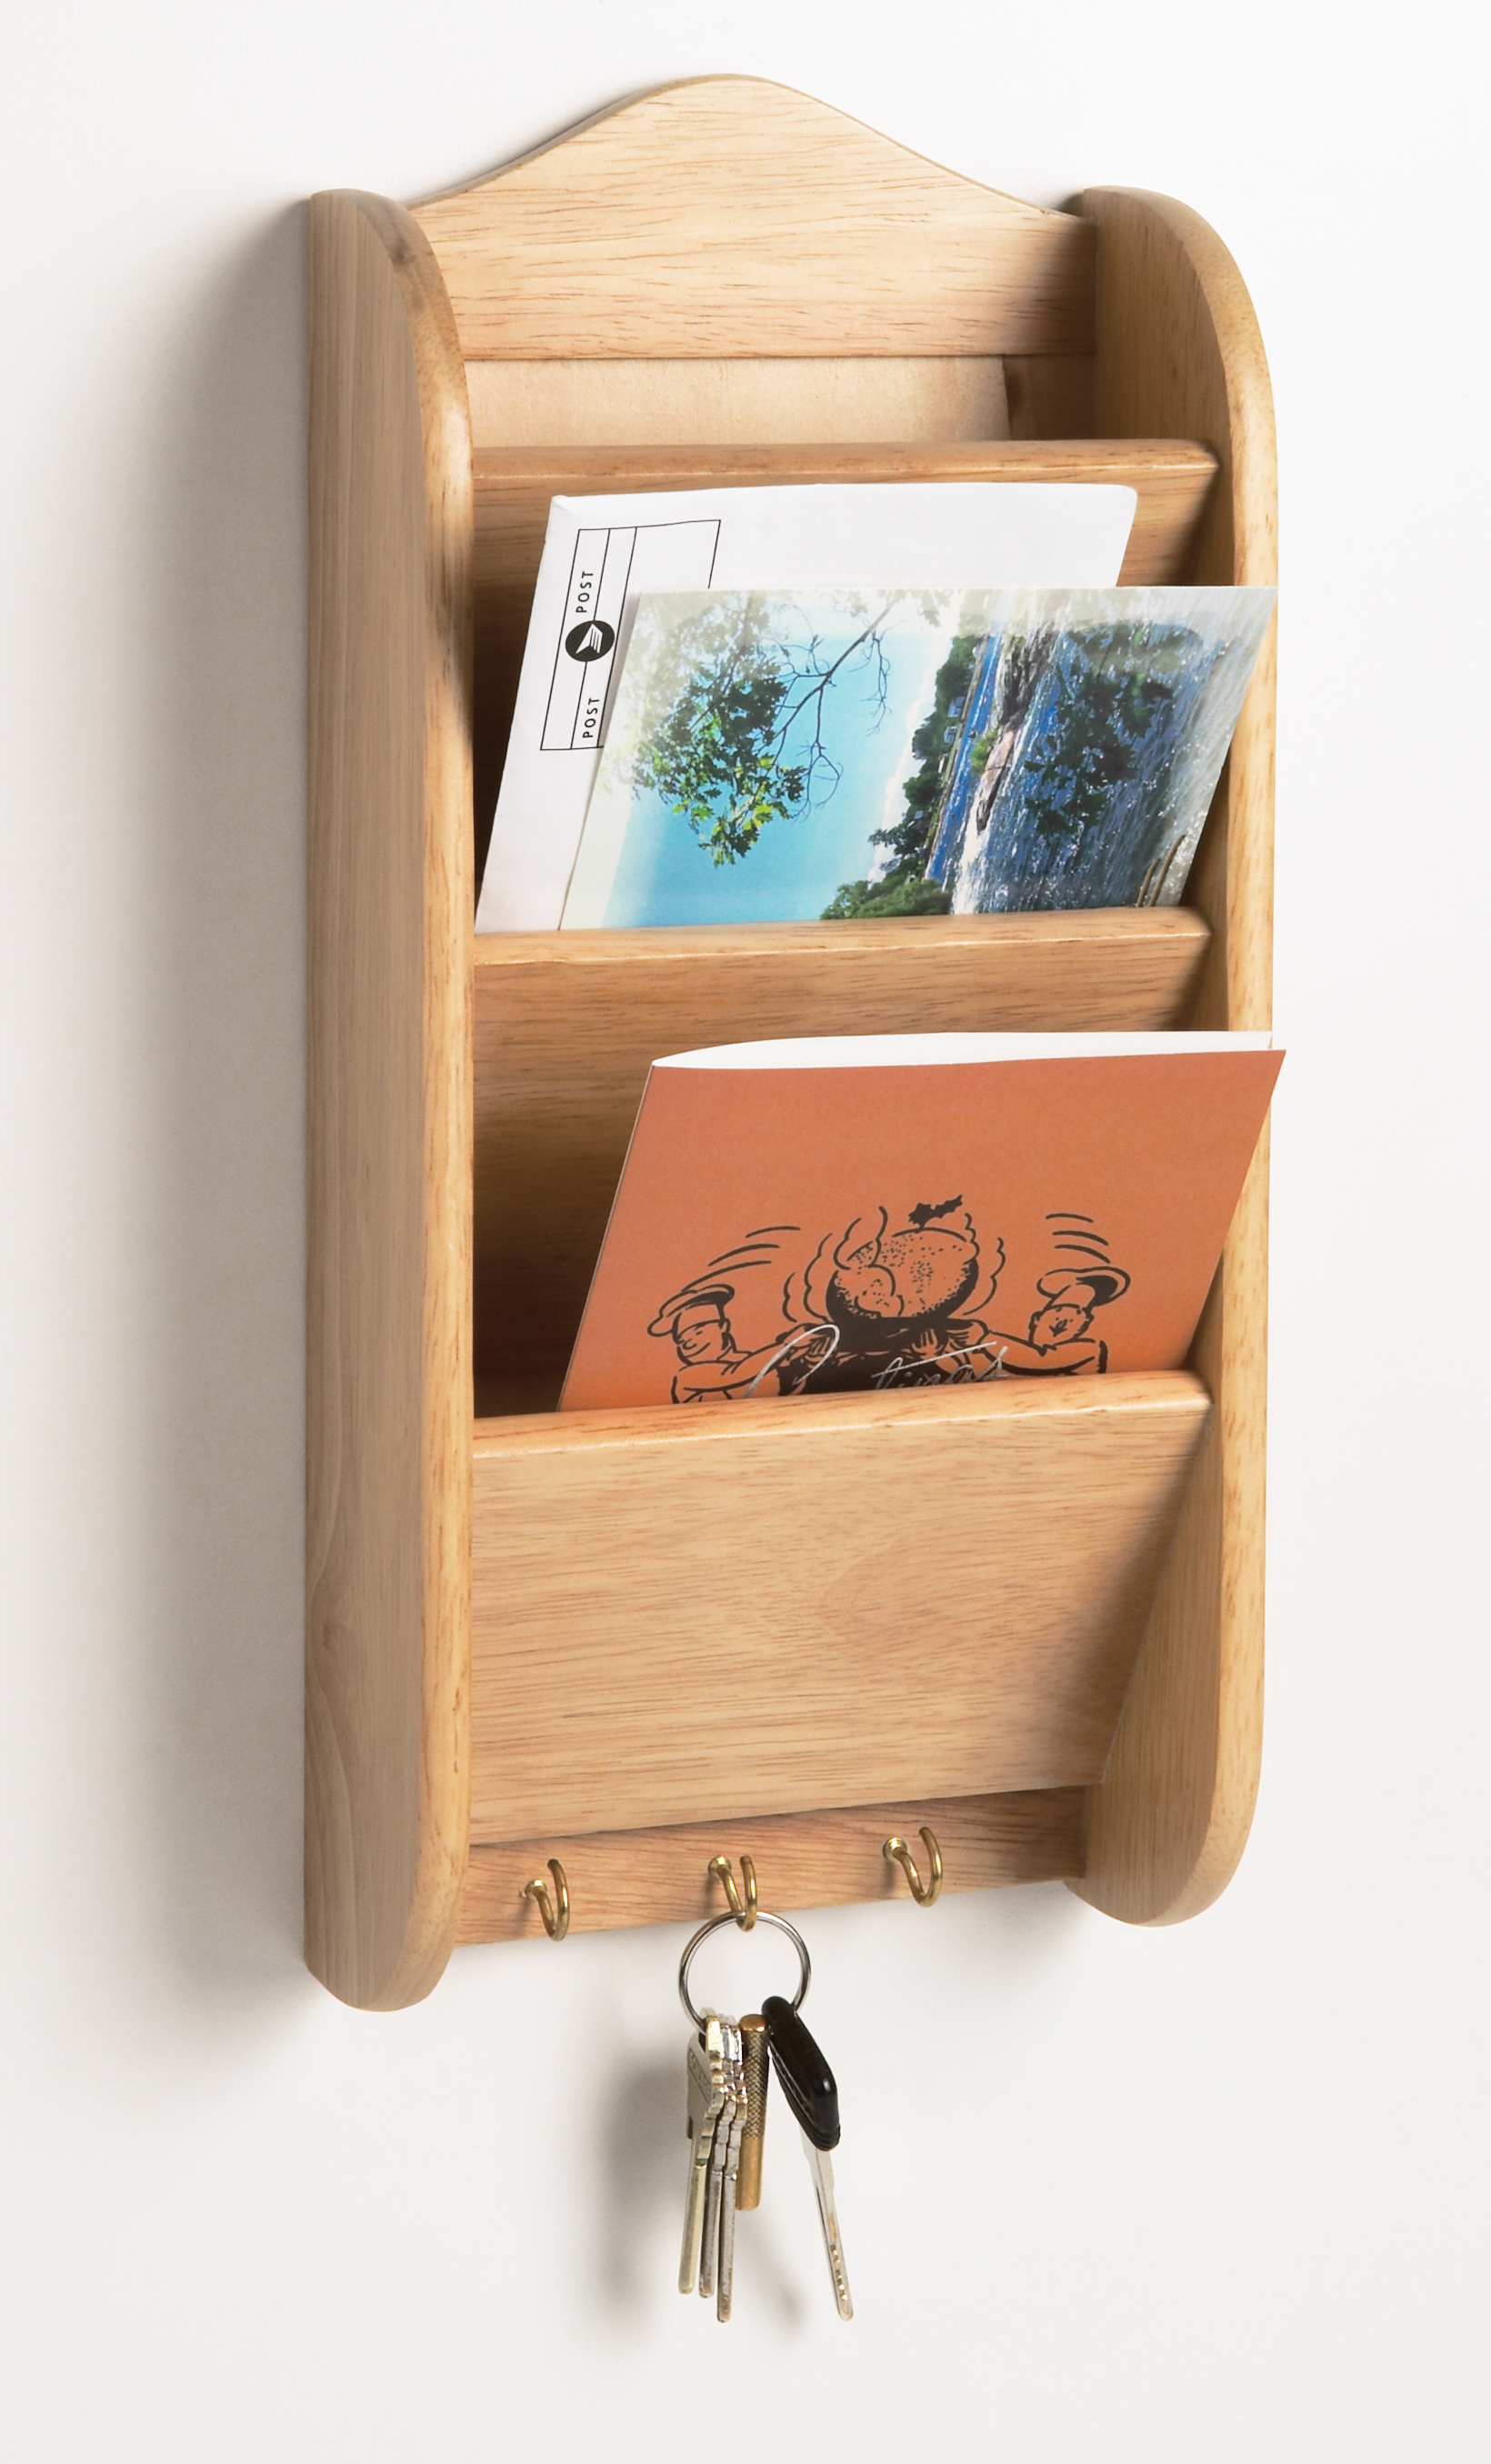 Hanging Mail And Key Organizer Fox Run Wood Letter Key Rack Holder Kitchen Home Mail